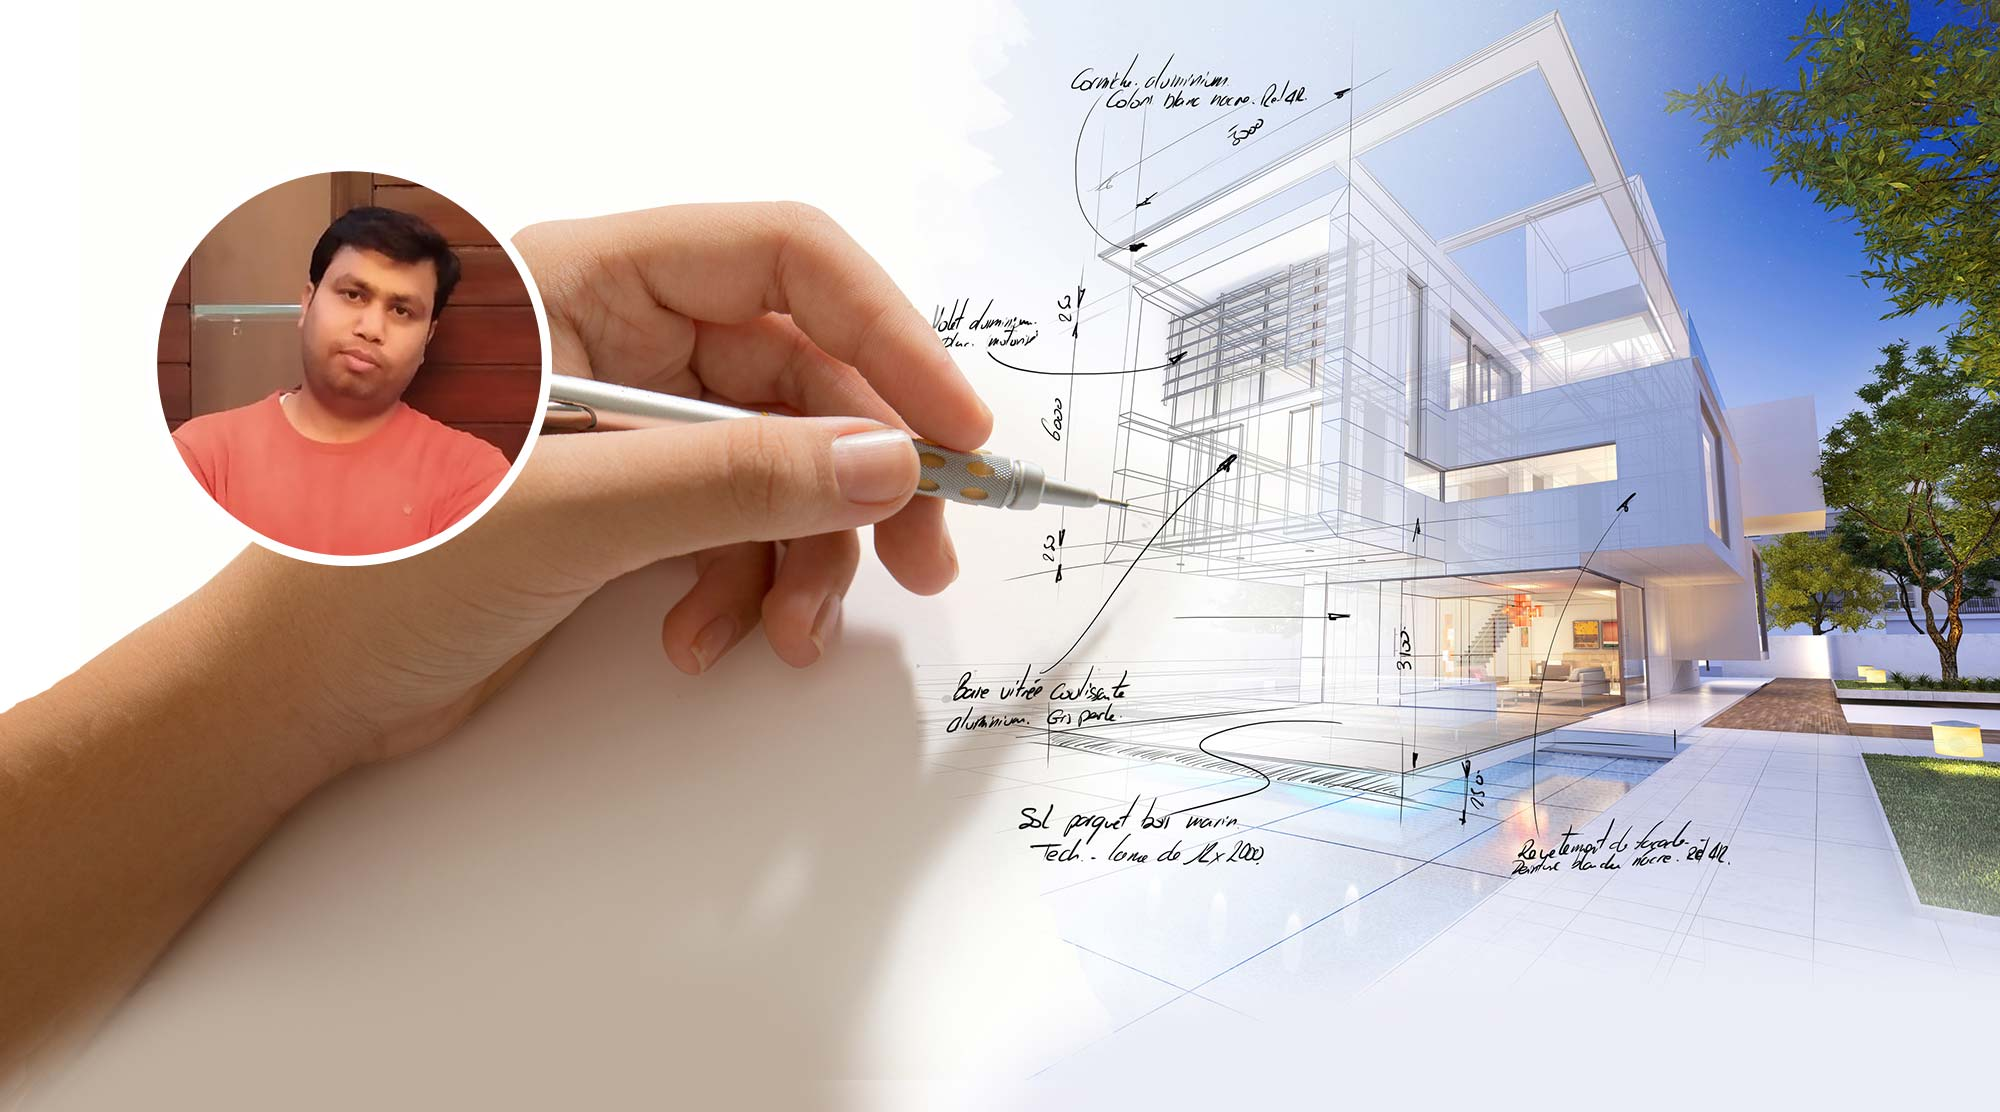 How to make career in architecture designing industry?